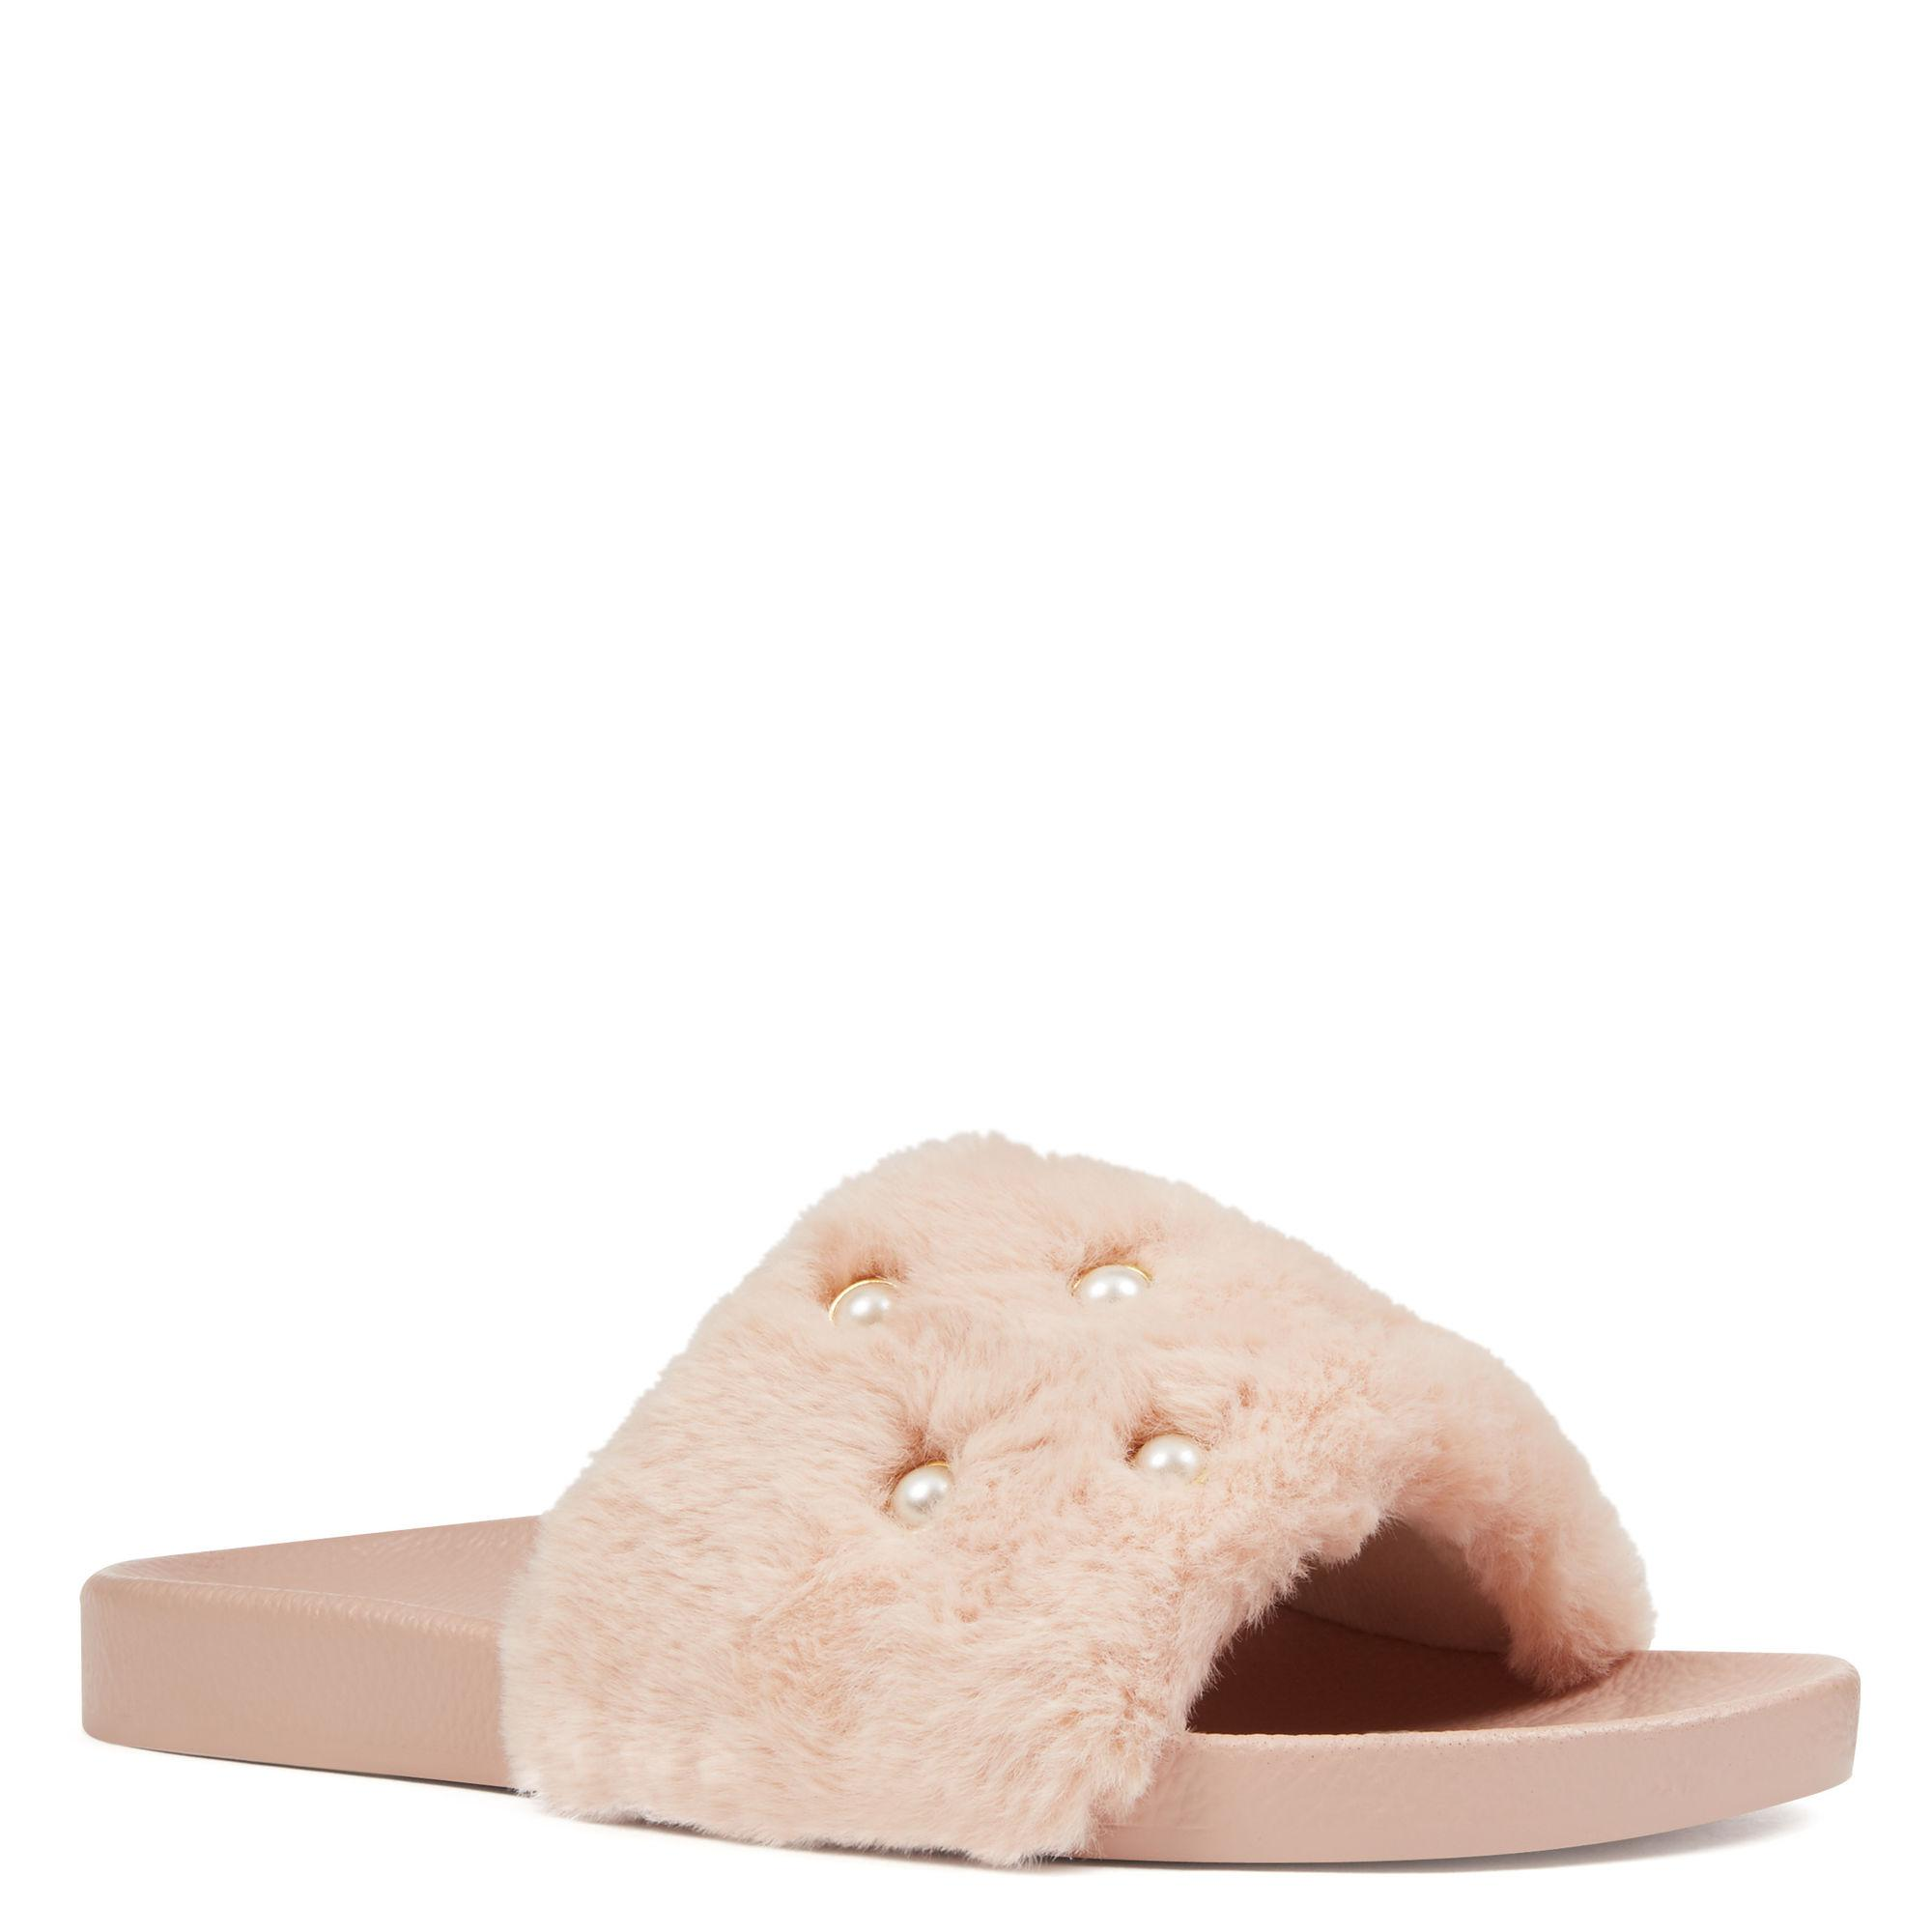 7dd2383d885 Lyst - Nine West Sheslides Slippers in Pink